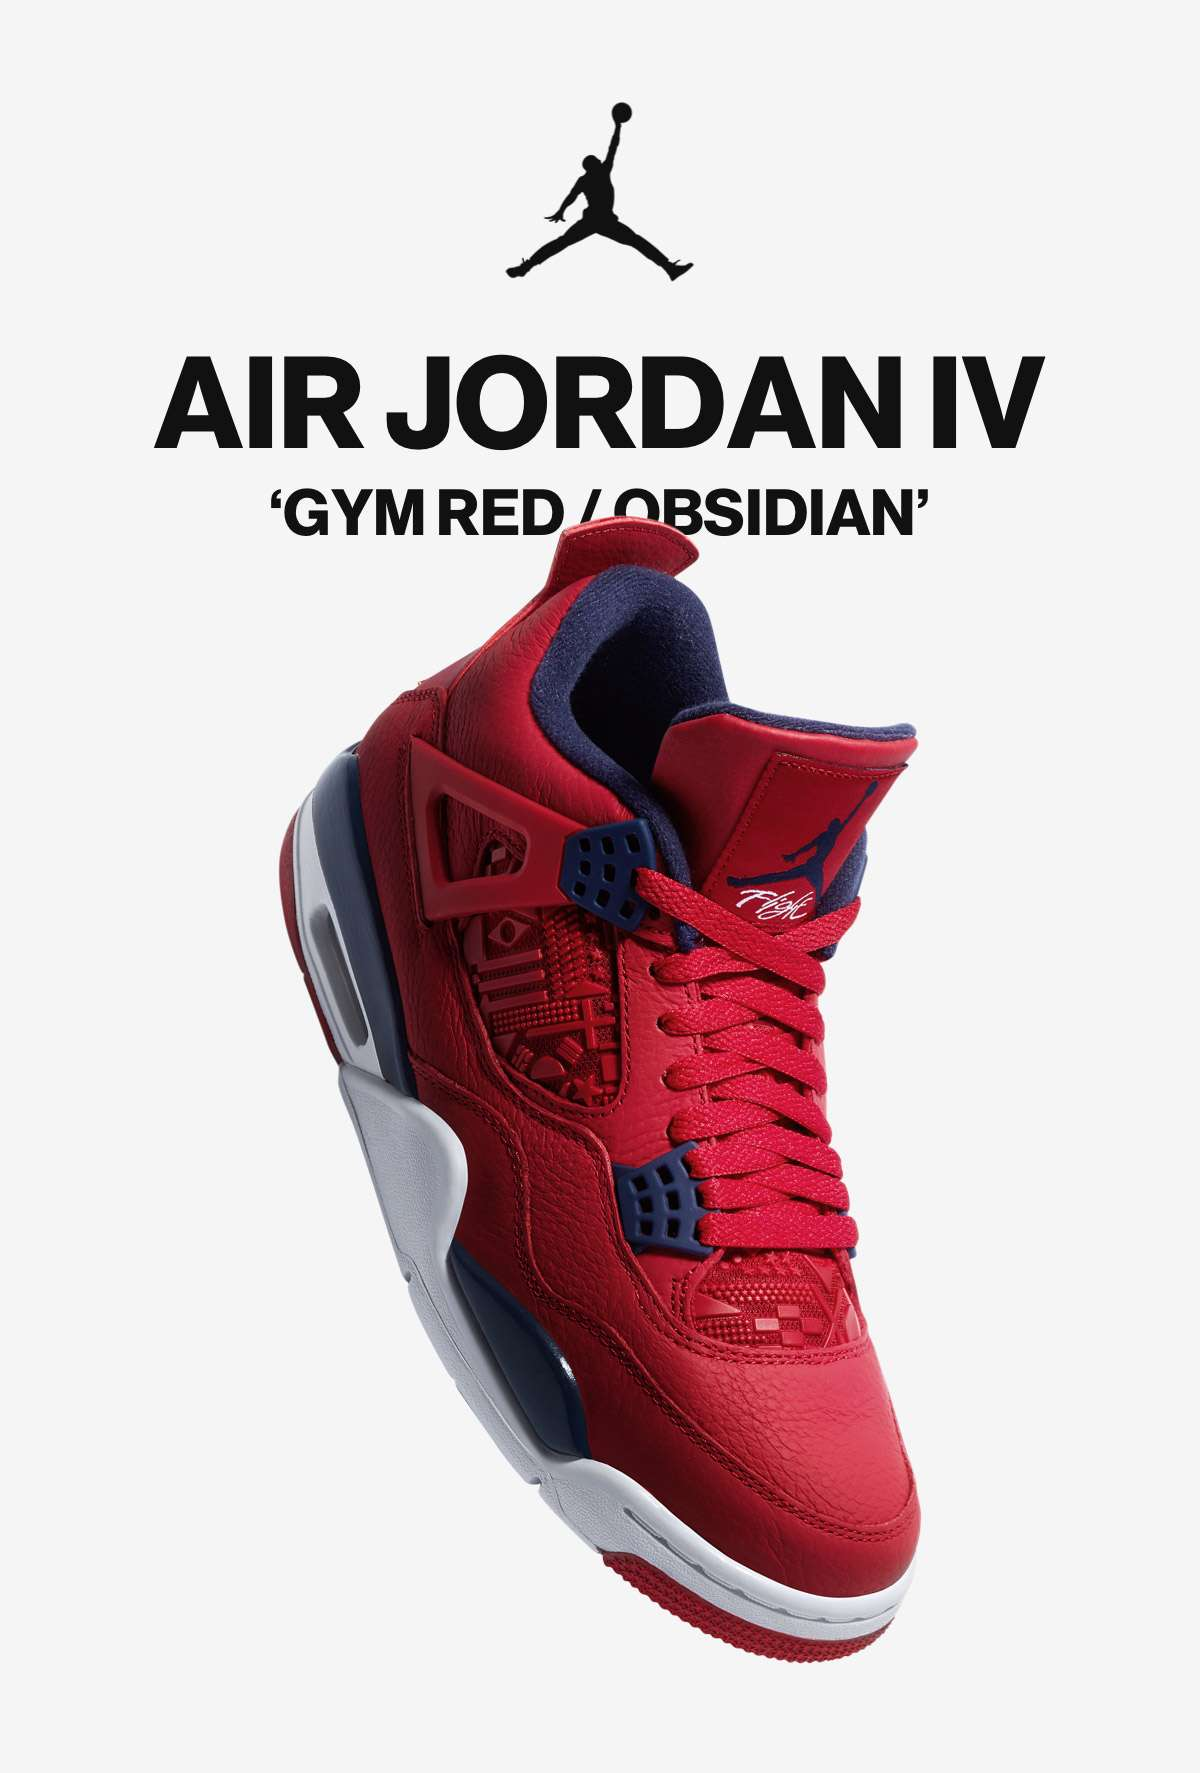 JORDAN | AIR JORDAN IV | 'GYM RED/OBSIDIAN'